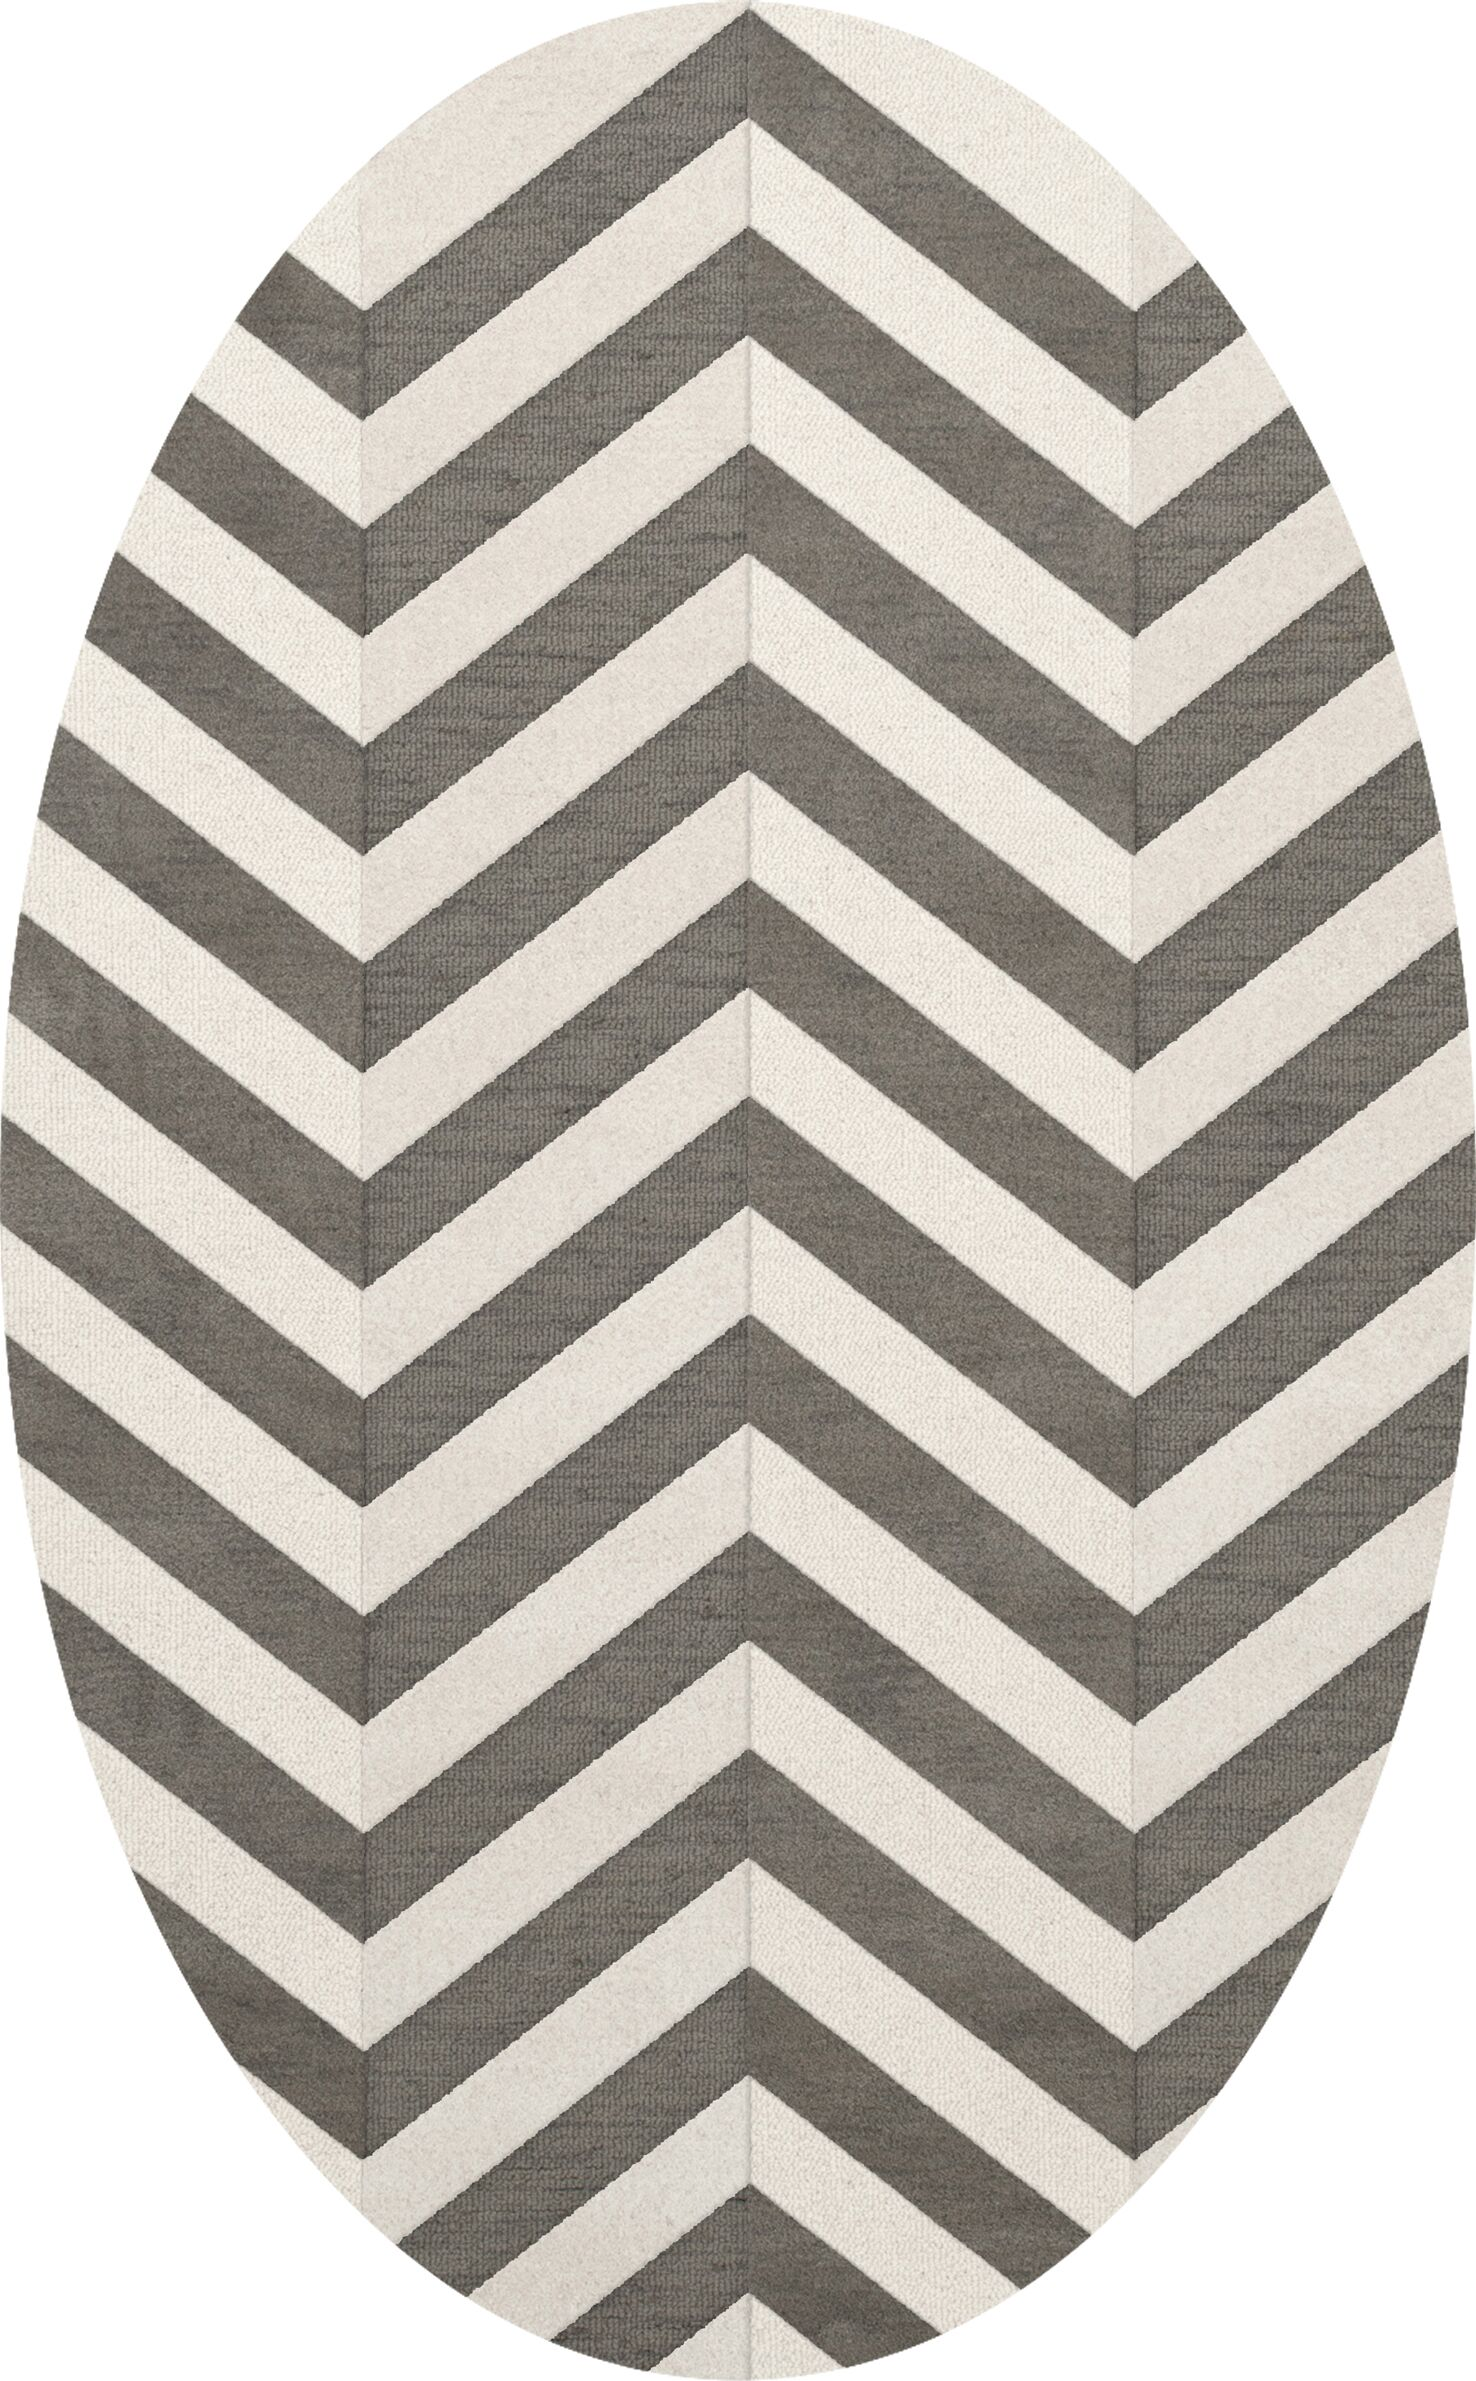 Shepardson Wool Quarry Area Rug Rug Size: Oval 12' x 15'